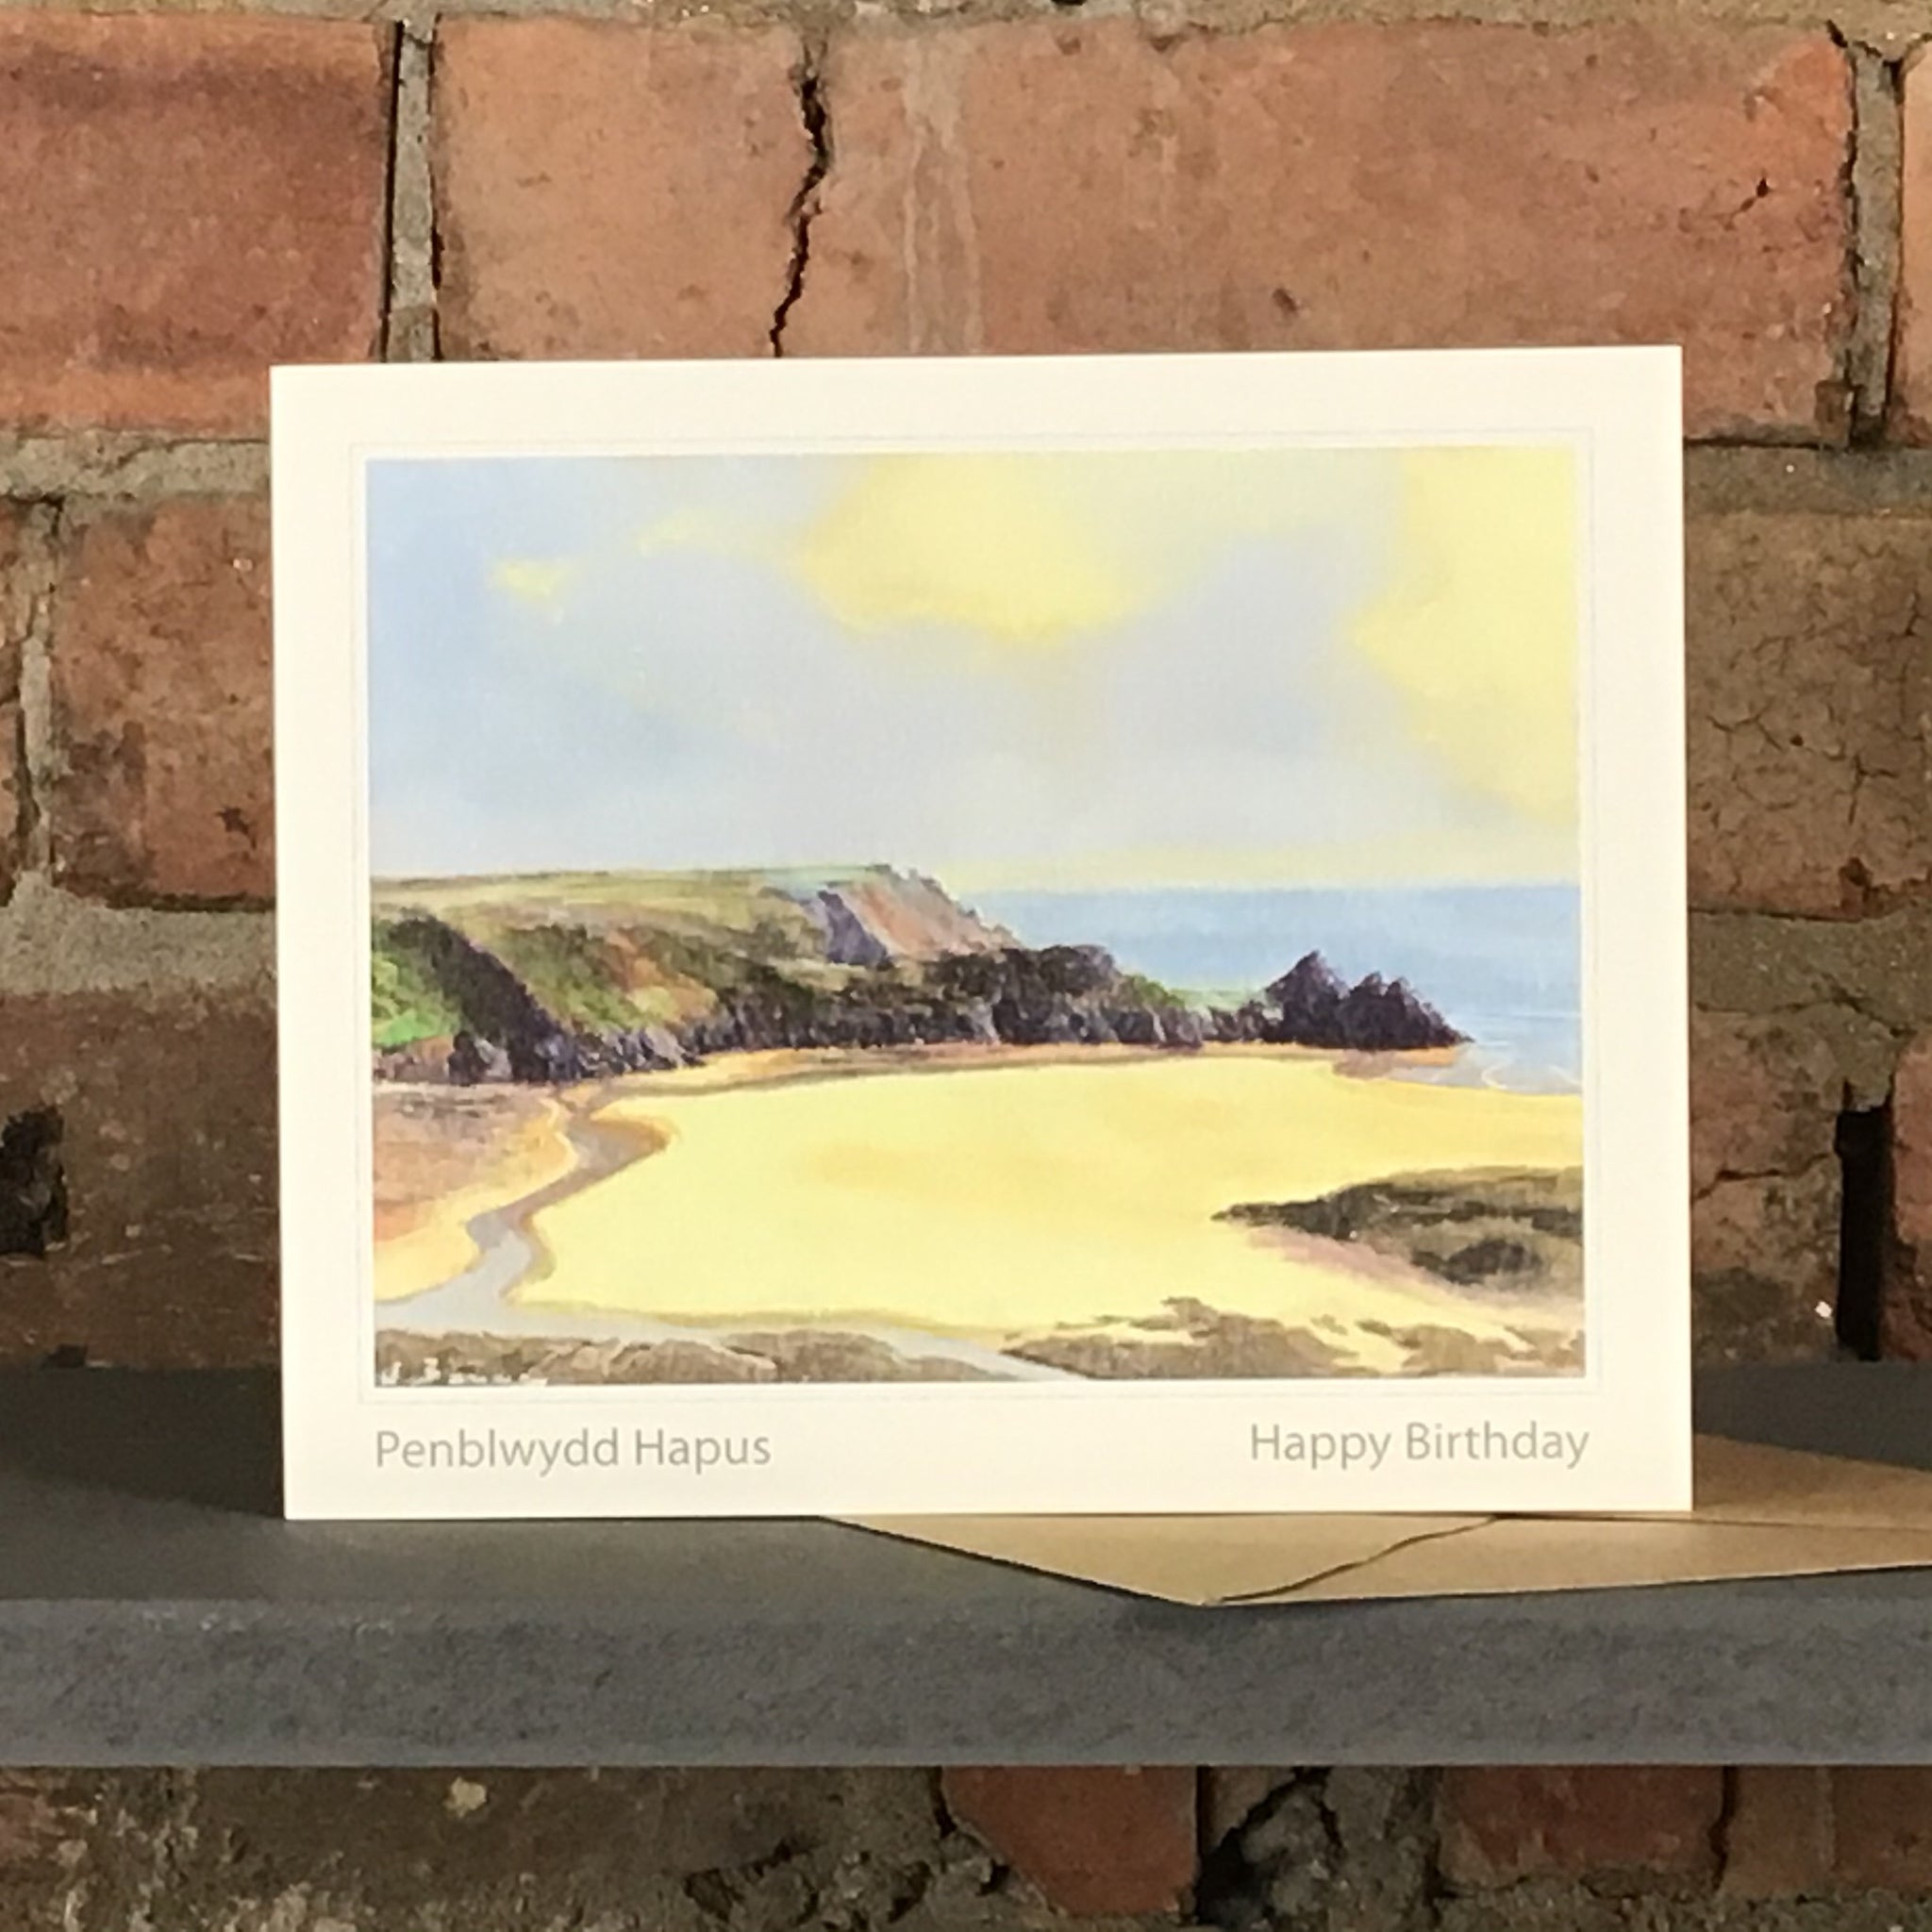 BAY OF LIGHT, THREE CLIFFS - HAPPY BIRTHDAY GREETINGS CARD SOLD ON BEHALF OF R N BANNING